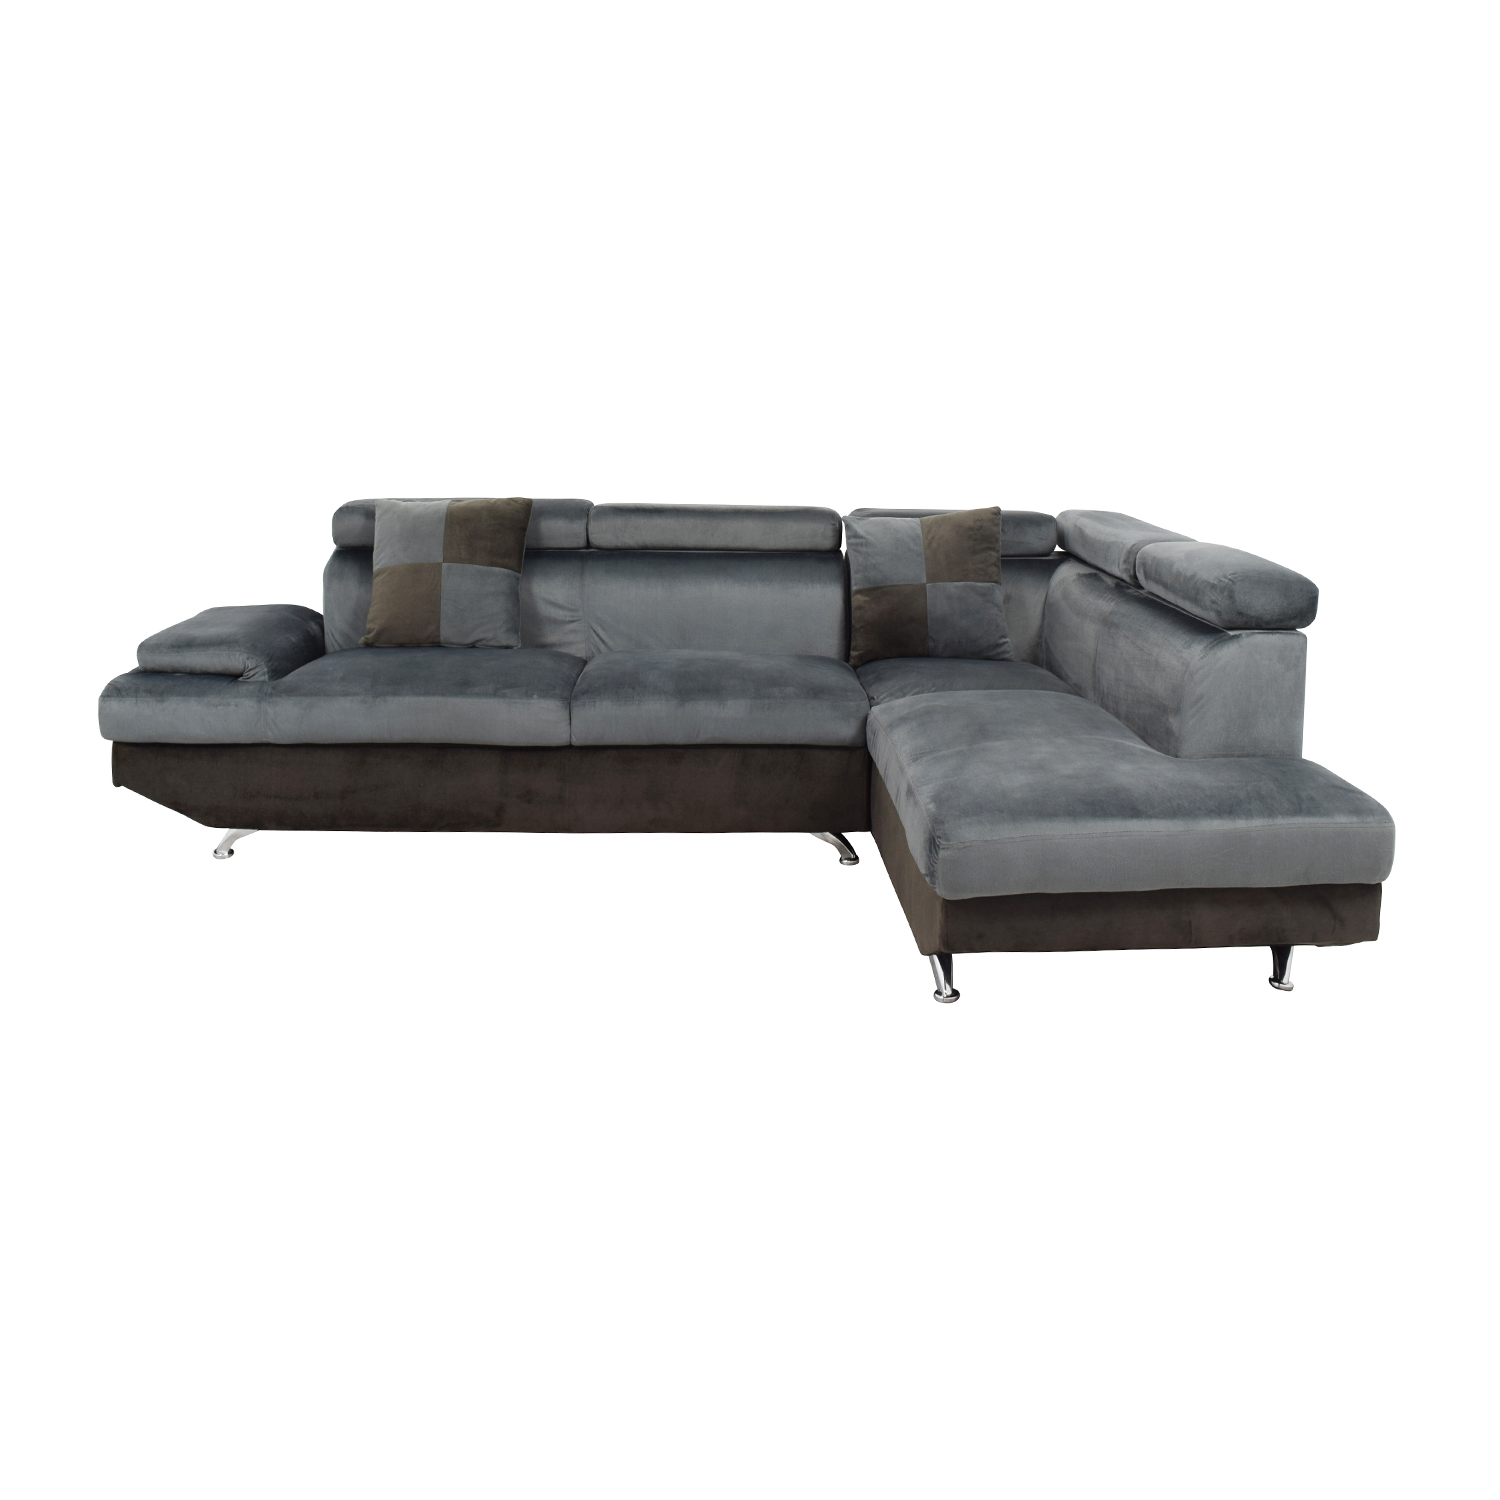 Beverly Furniture Beverly Furniture Two Piece Gray Sectional Sofa price